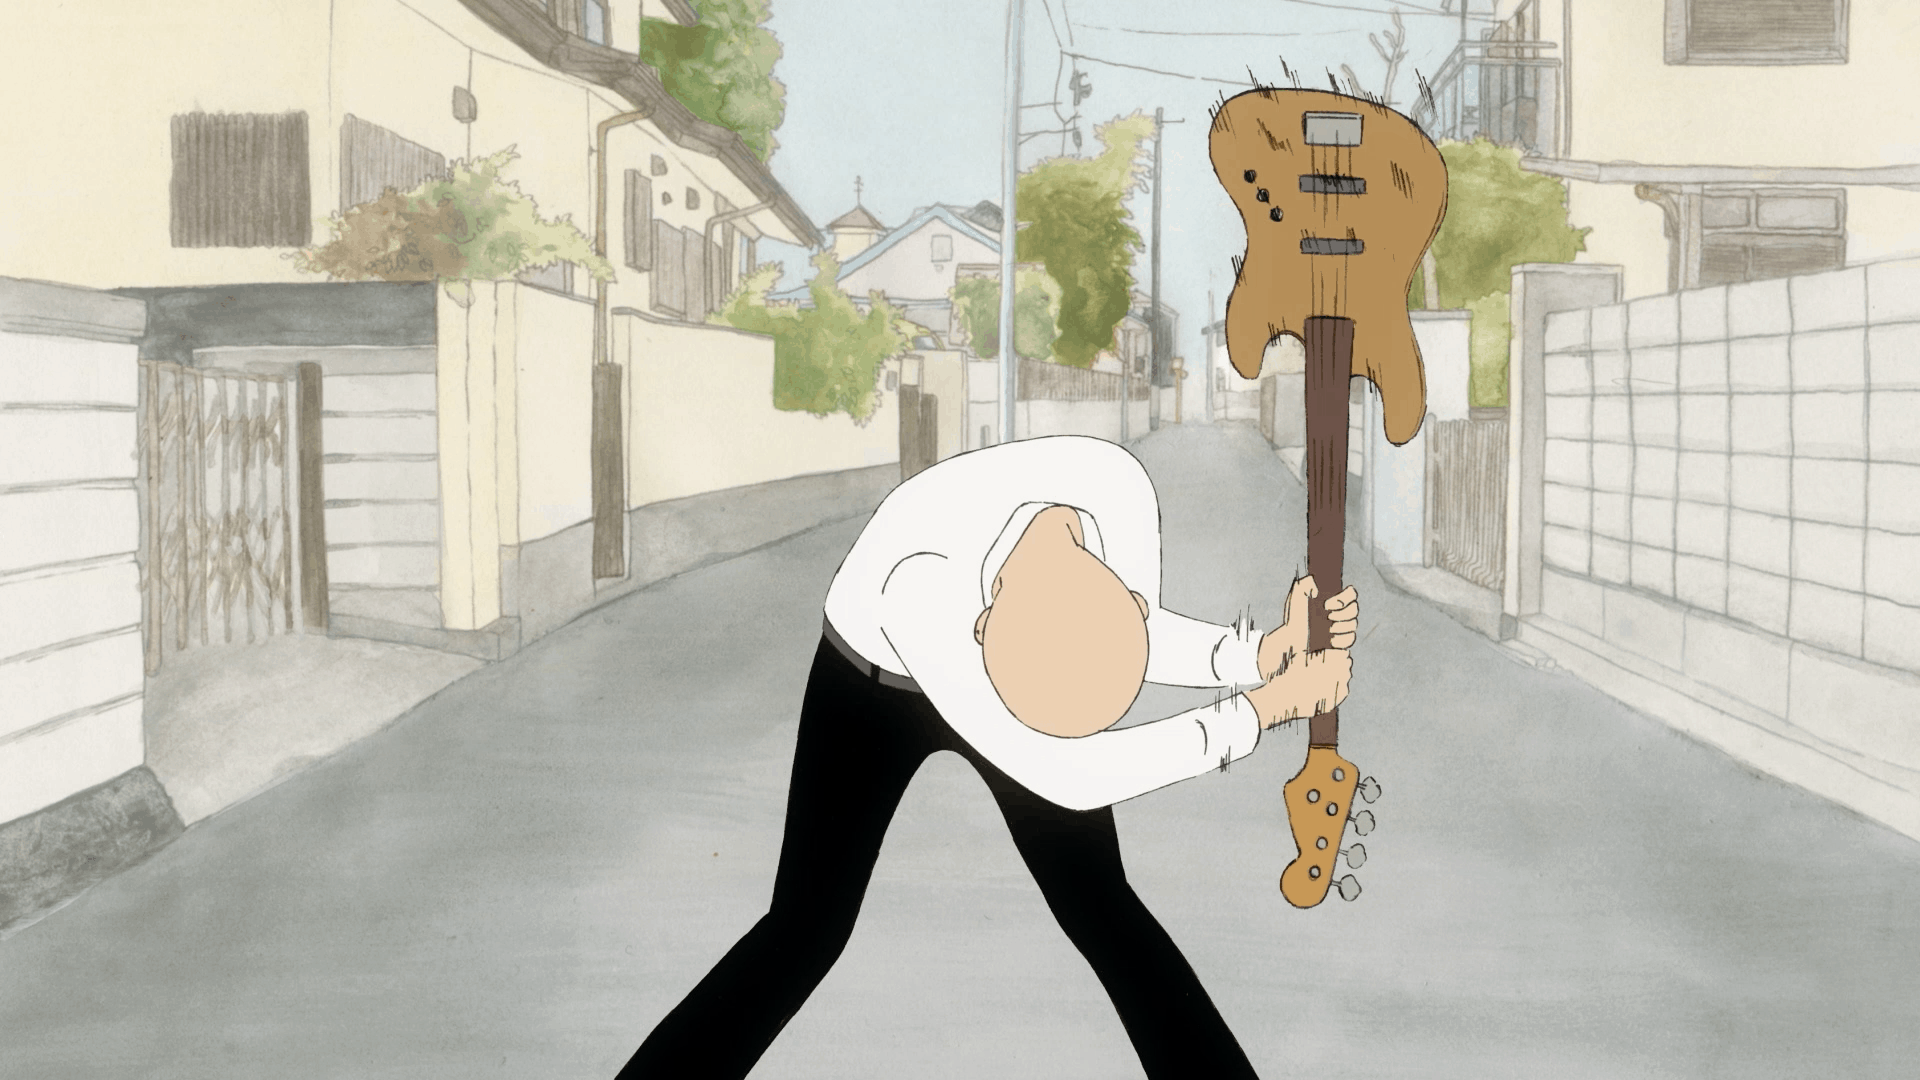 GKIDS Brings 'On-Gaku: Our Sound' to Select Theaters on December 11th 2